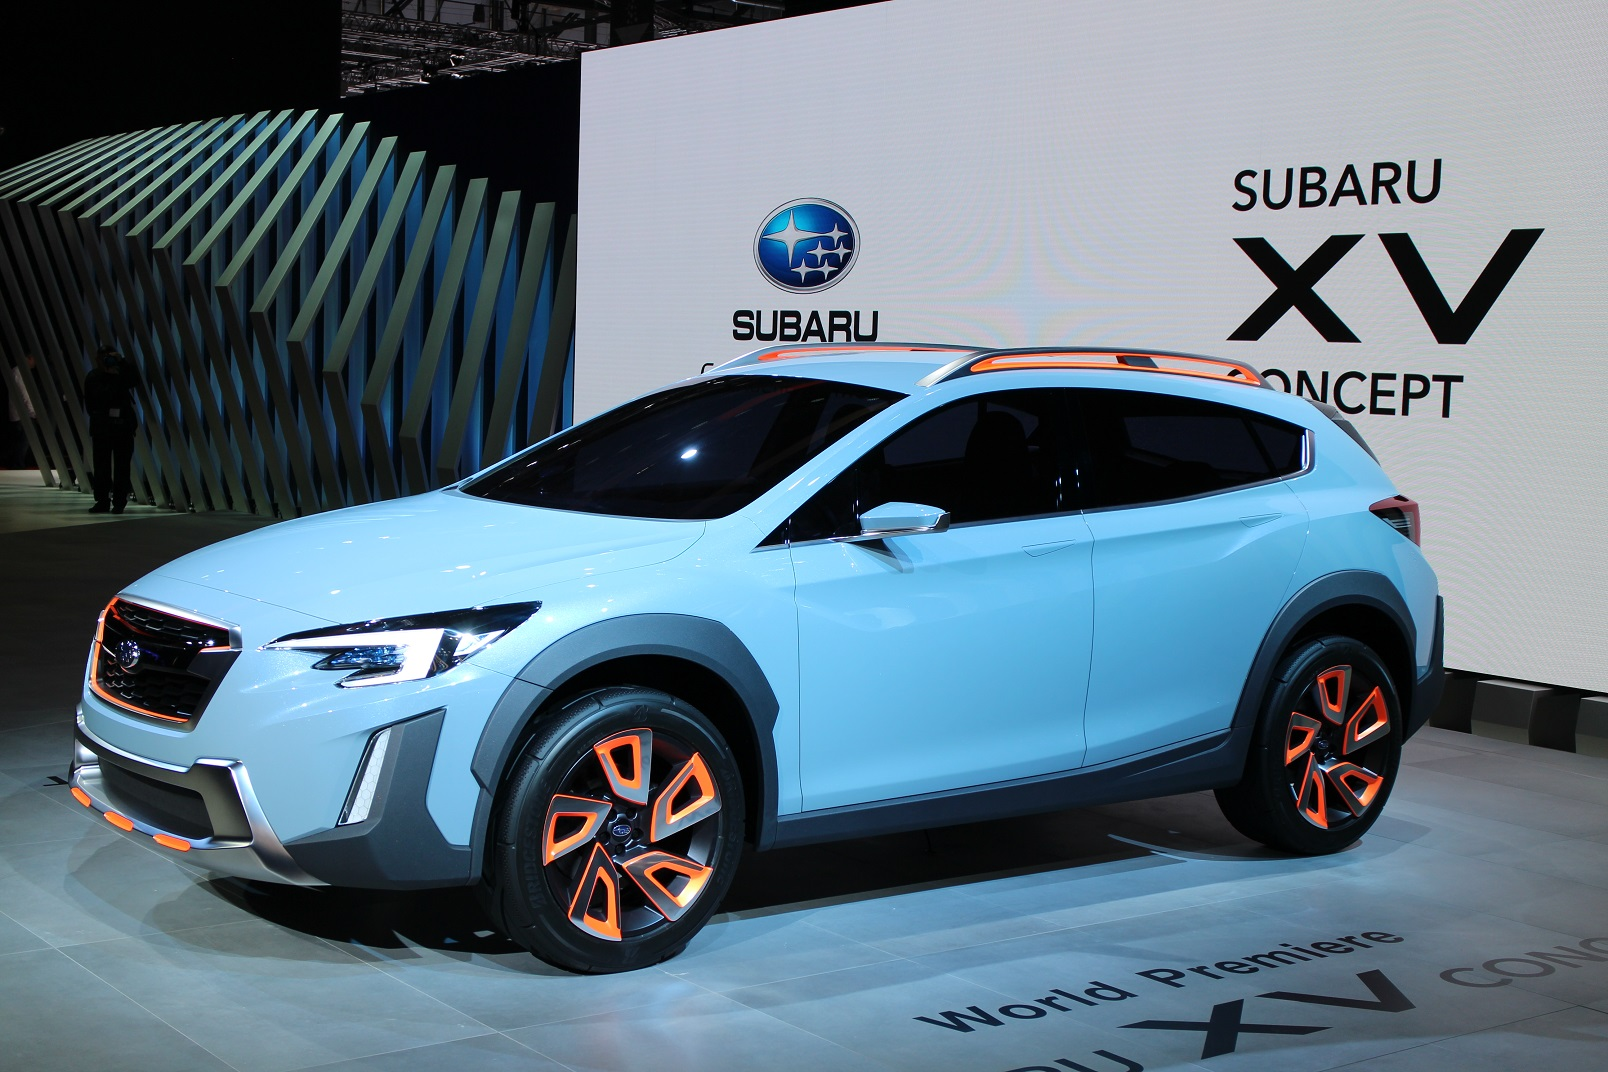 2018 Subaru Xv Concept 2019 New Car Reviews By Wittsendcandy Crosstrek Wiring Diagram Subarus Hints At Next Gen Live